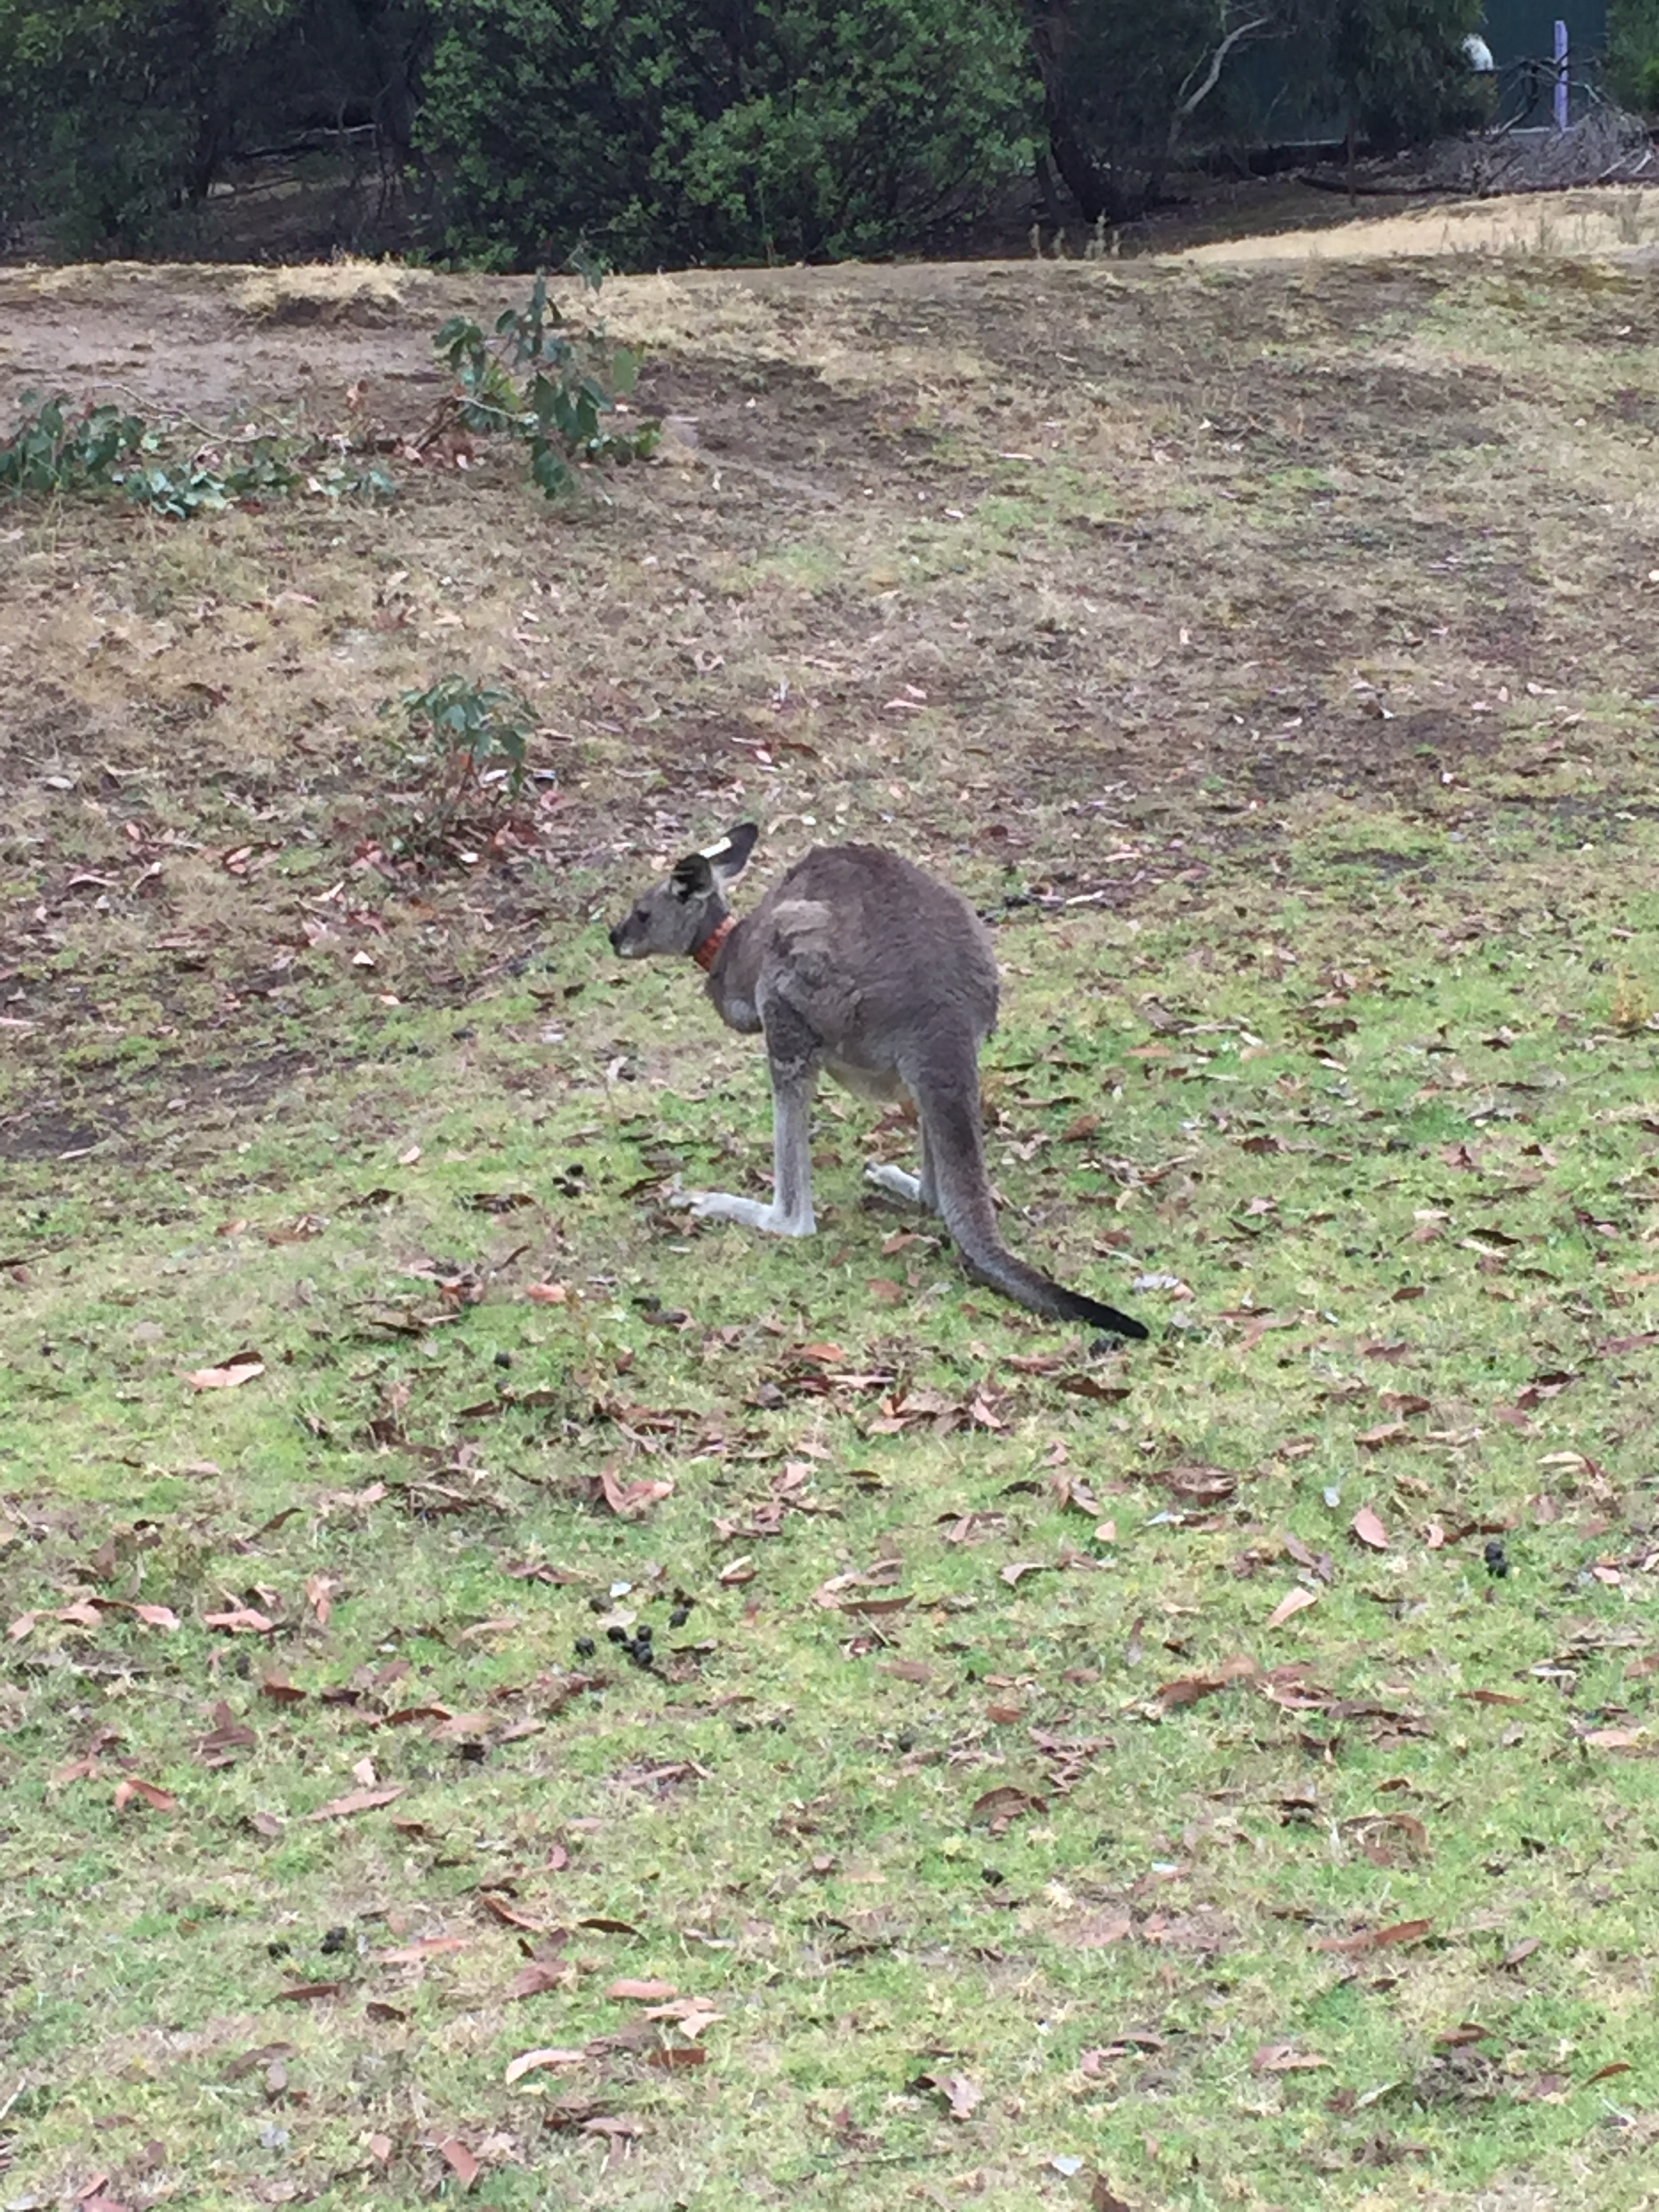 The Anglesea Golf Club is infested with kangaroos.